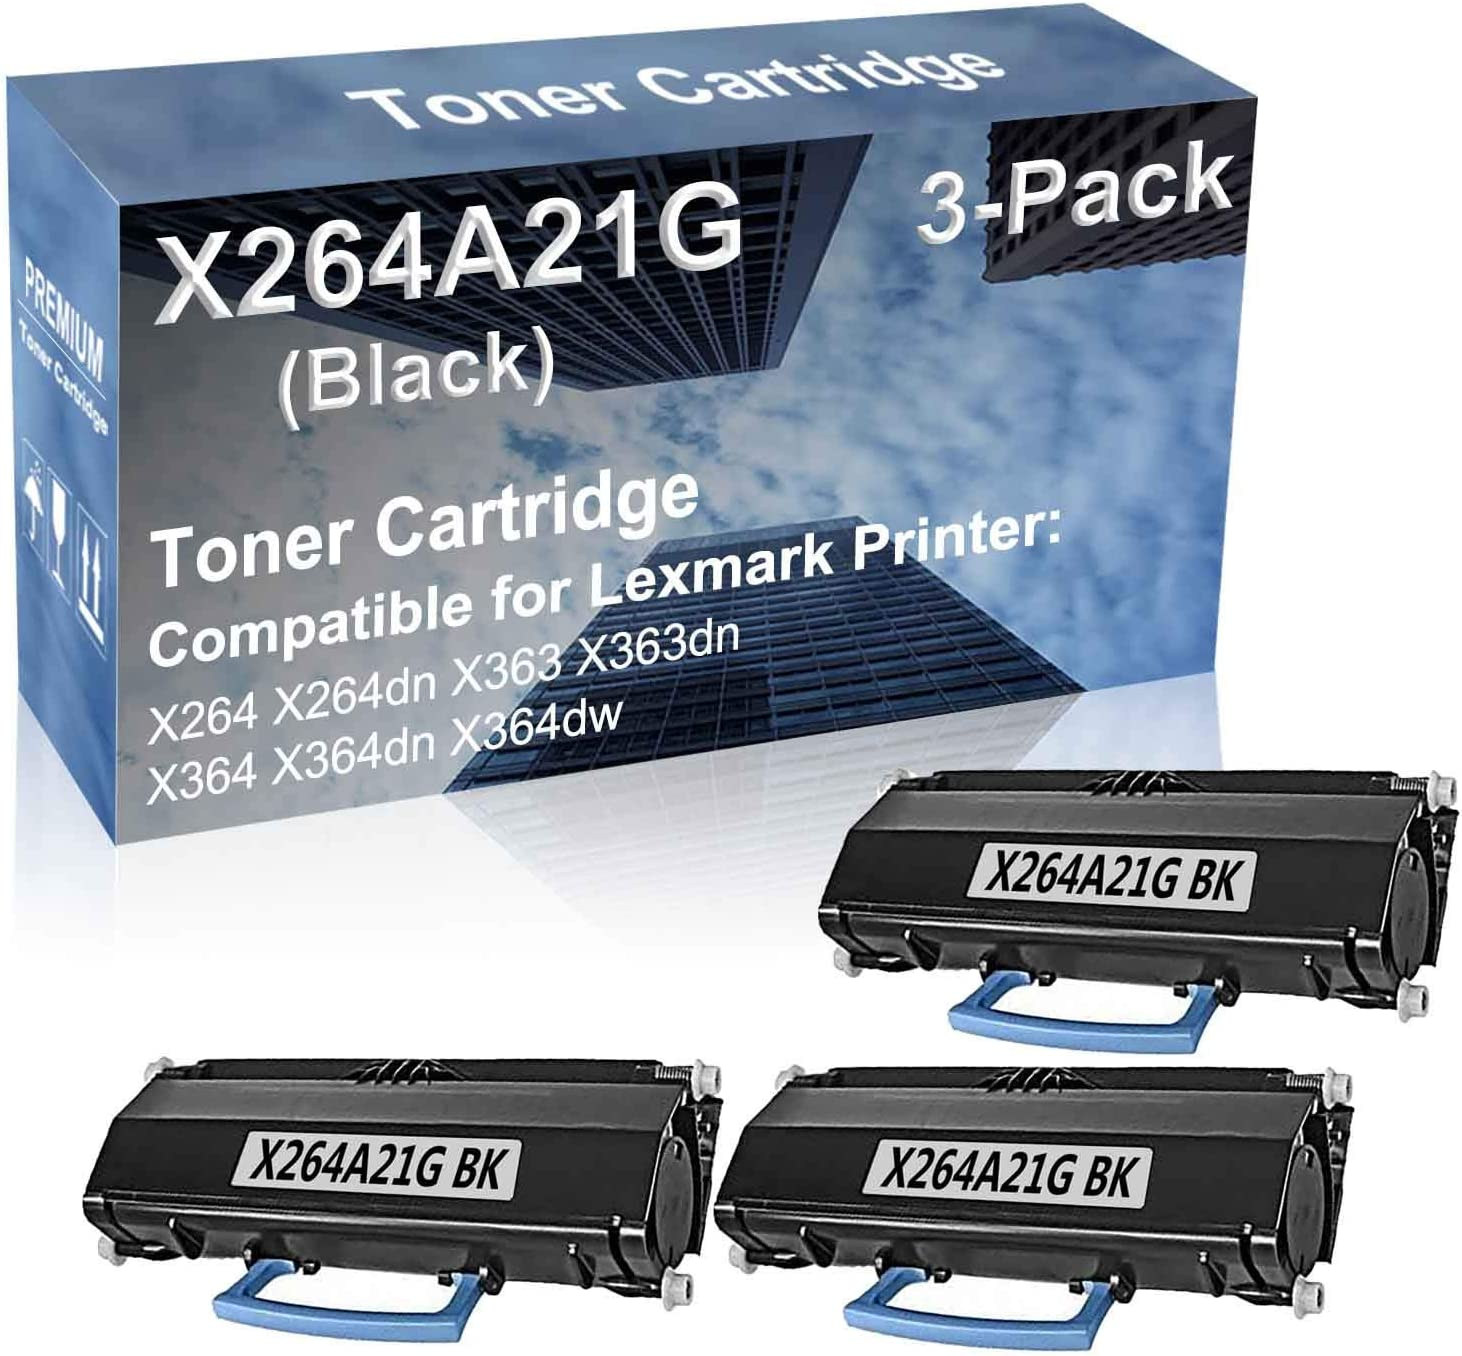 3-Pack Compatible High Yield X364dn X364dw Printer Cartridge Replacement for Lexmark X264A21G Toner Cartridge (Black)